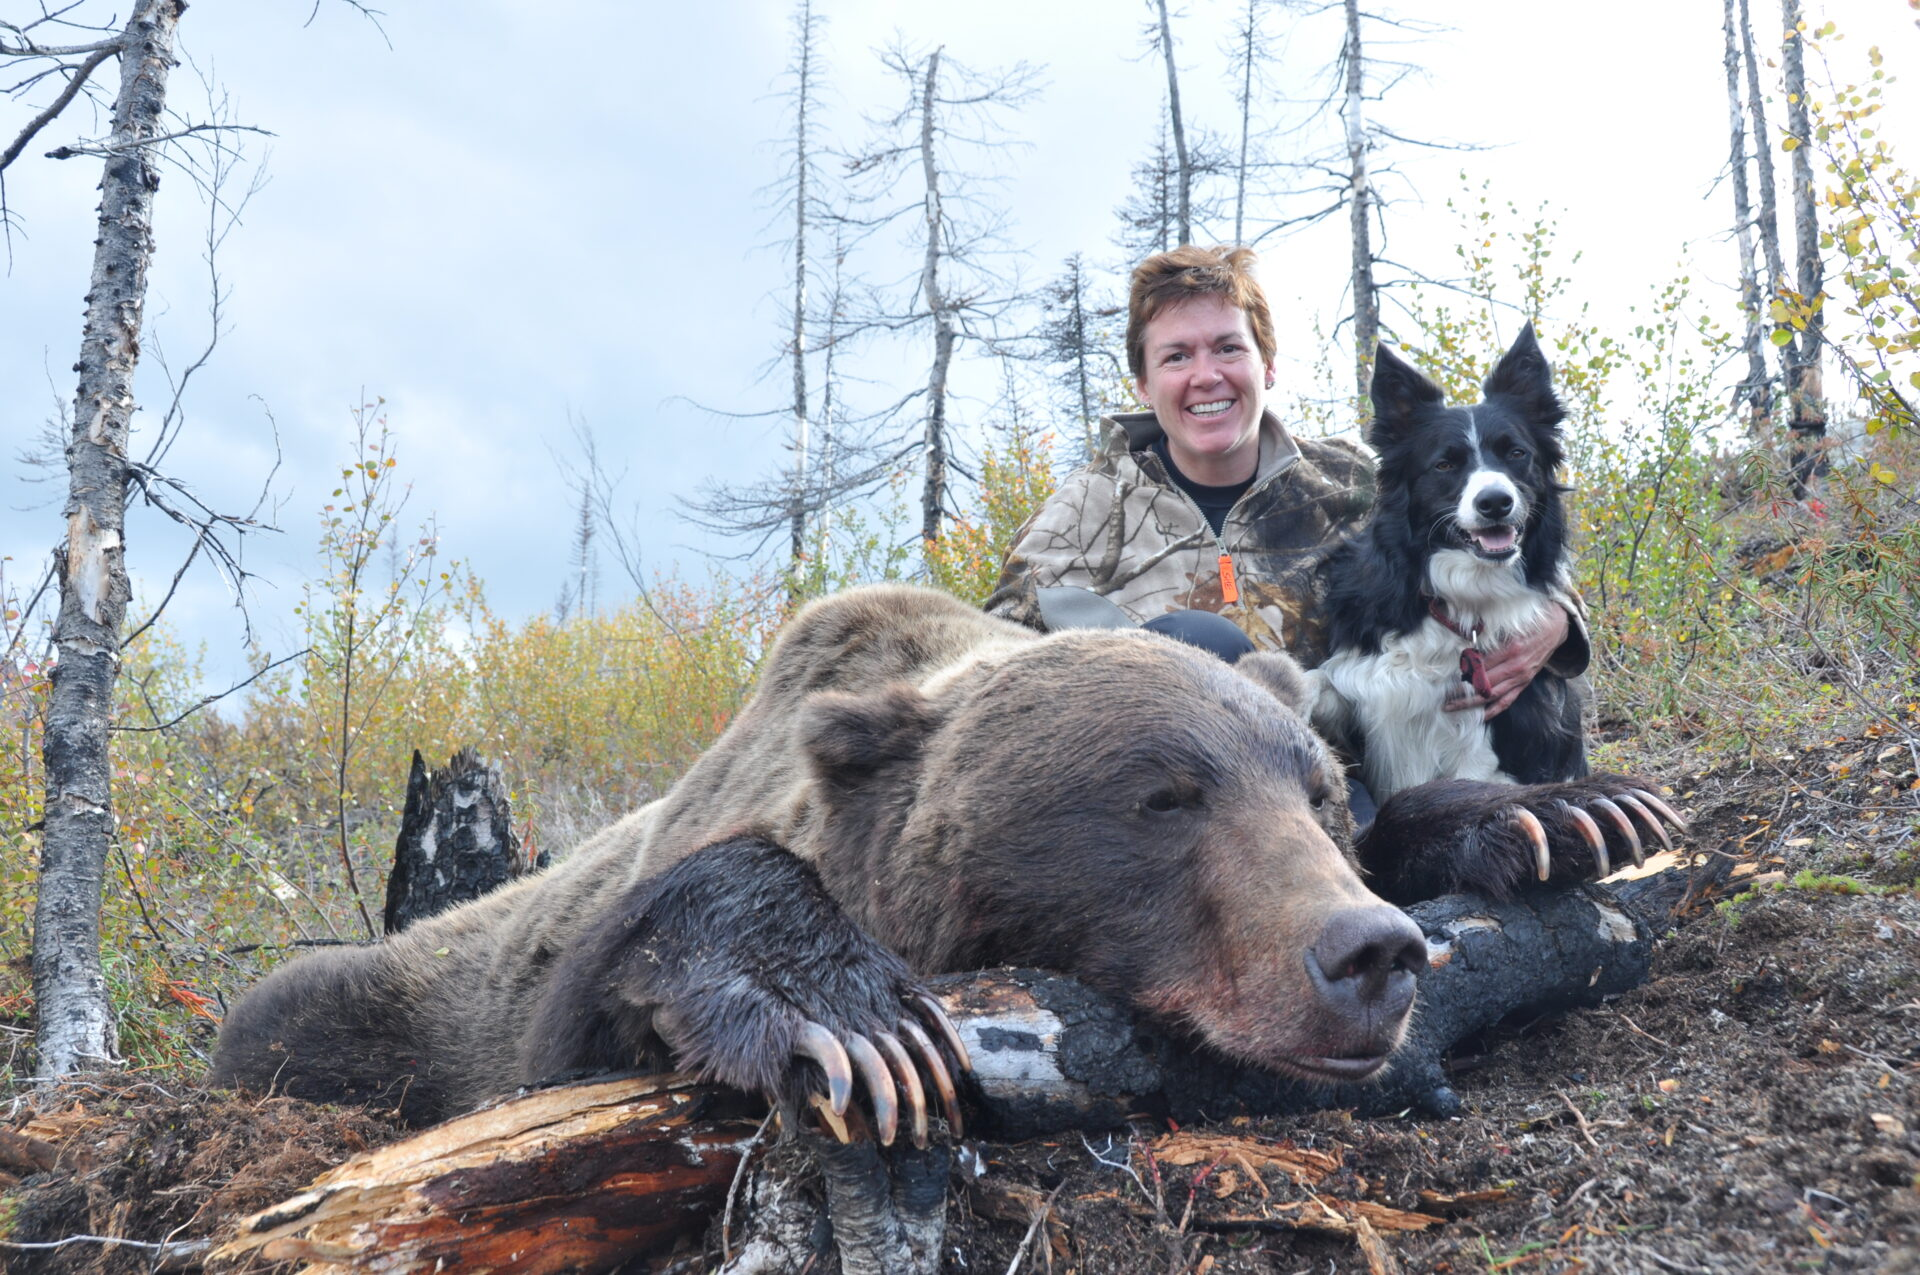 Jet, at 16 months old, accompanied us on a grizzly hunt.